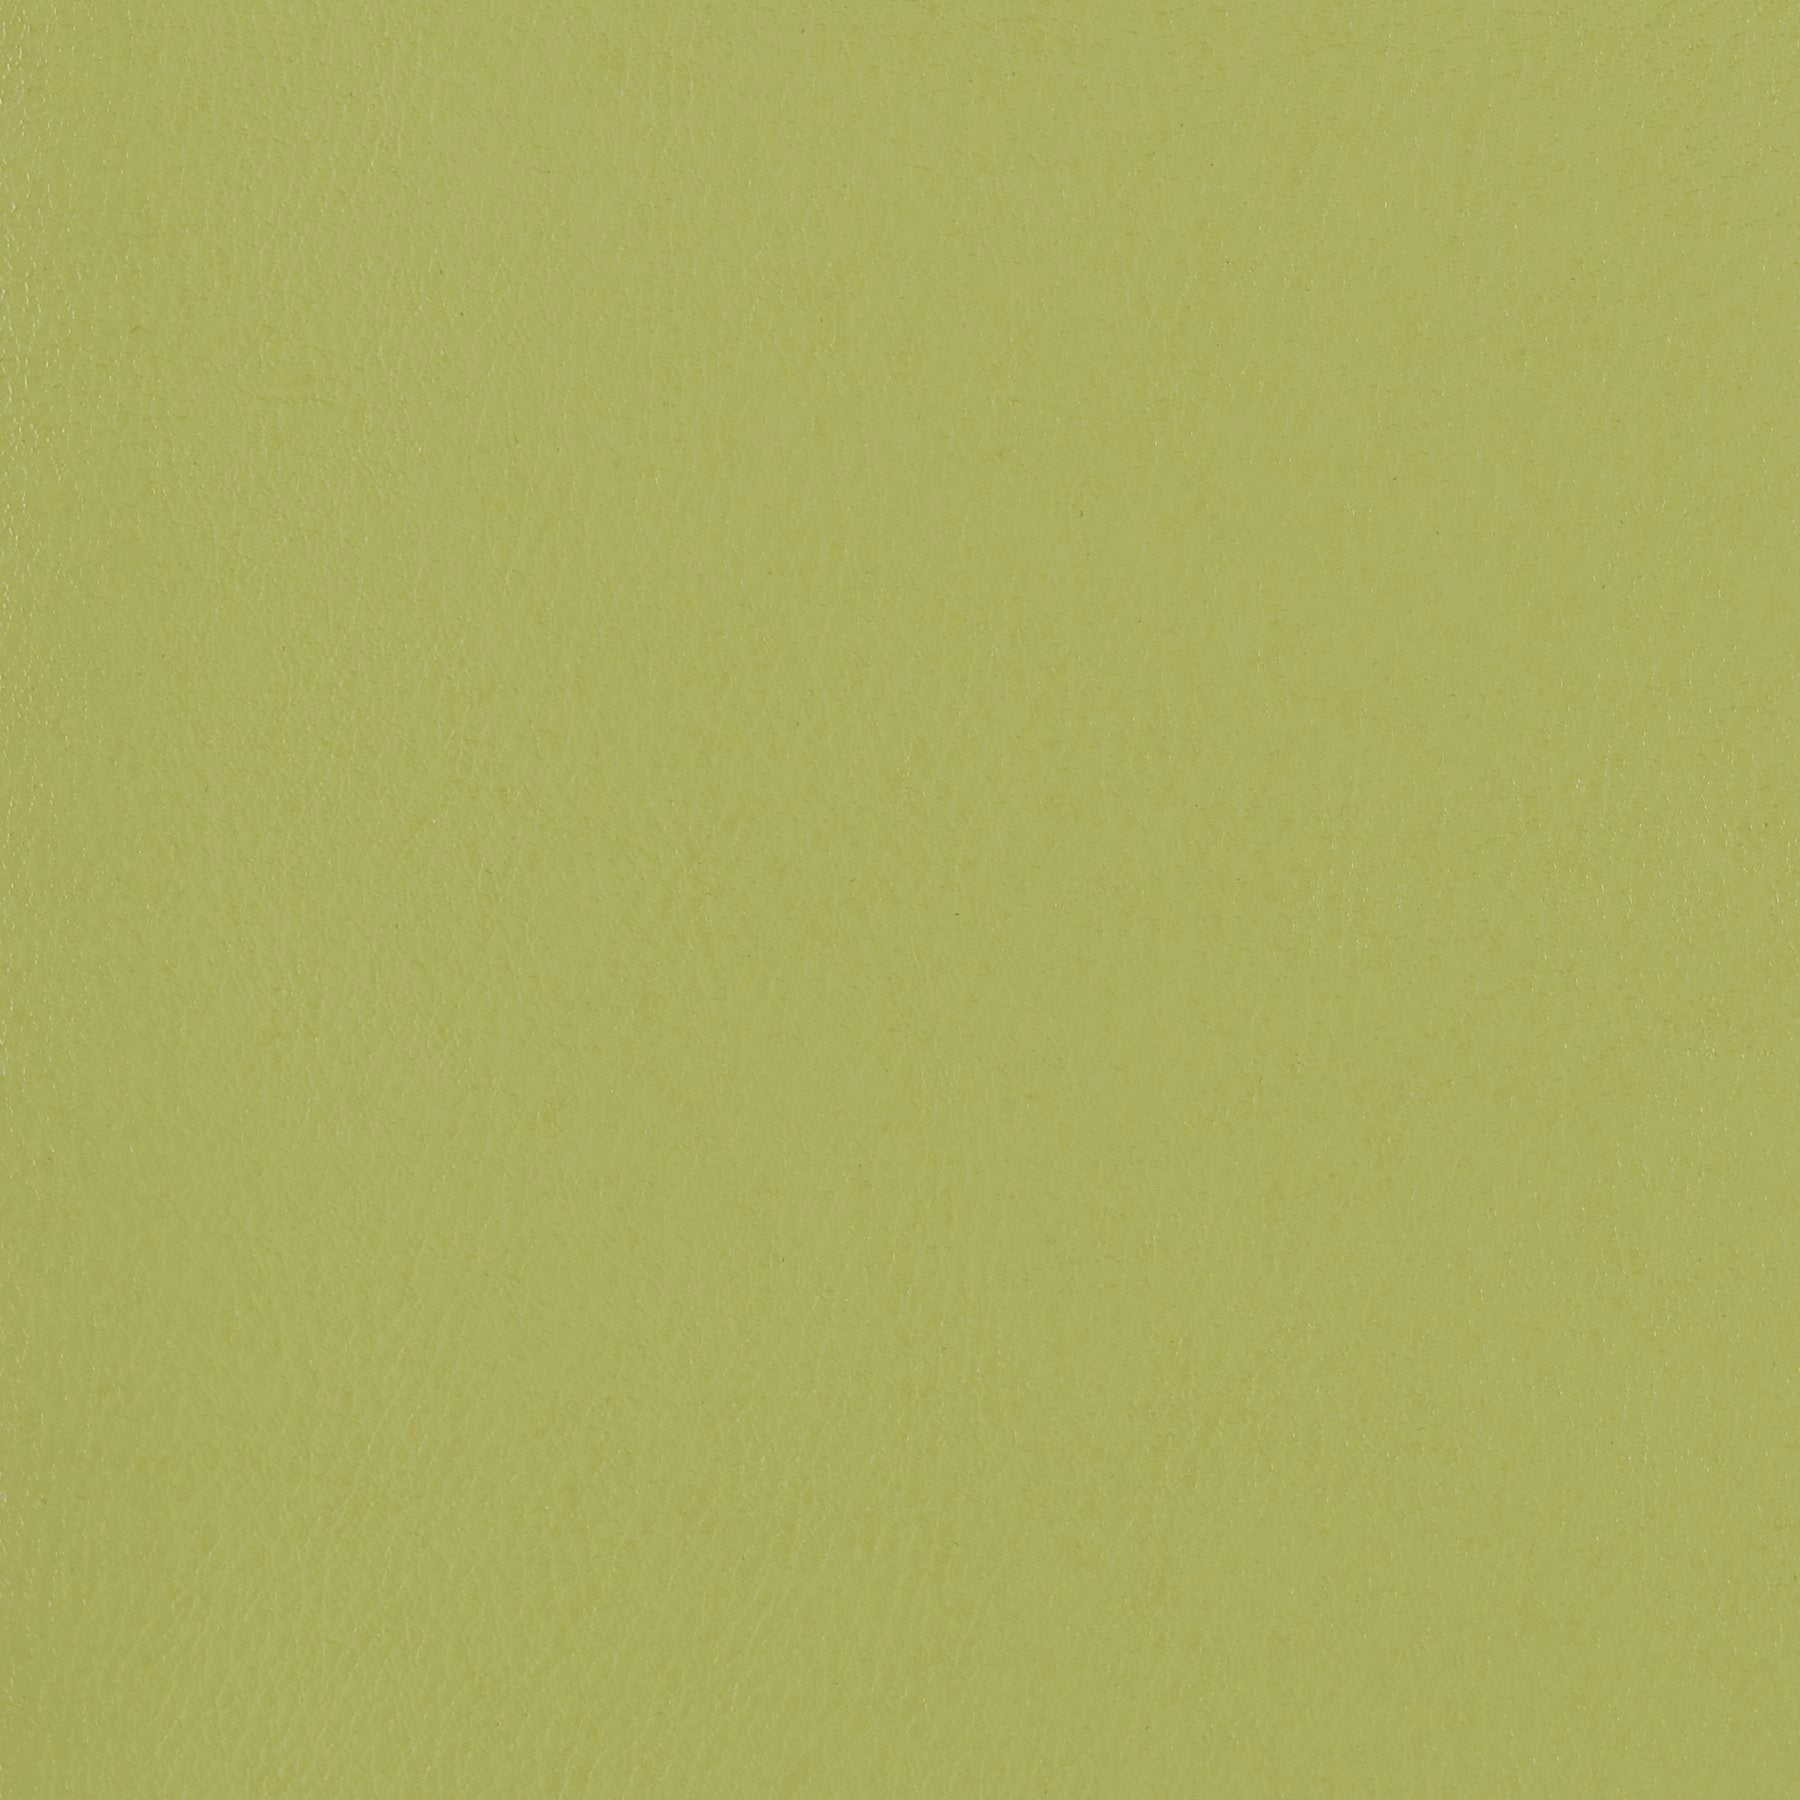 Matcha Leaves|4046-14-F414|Matcha Leaves 4046-14-F414